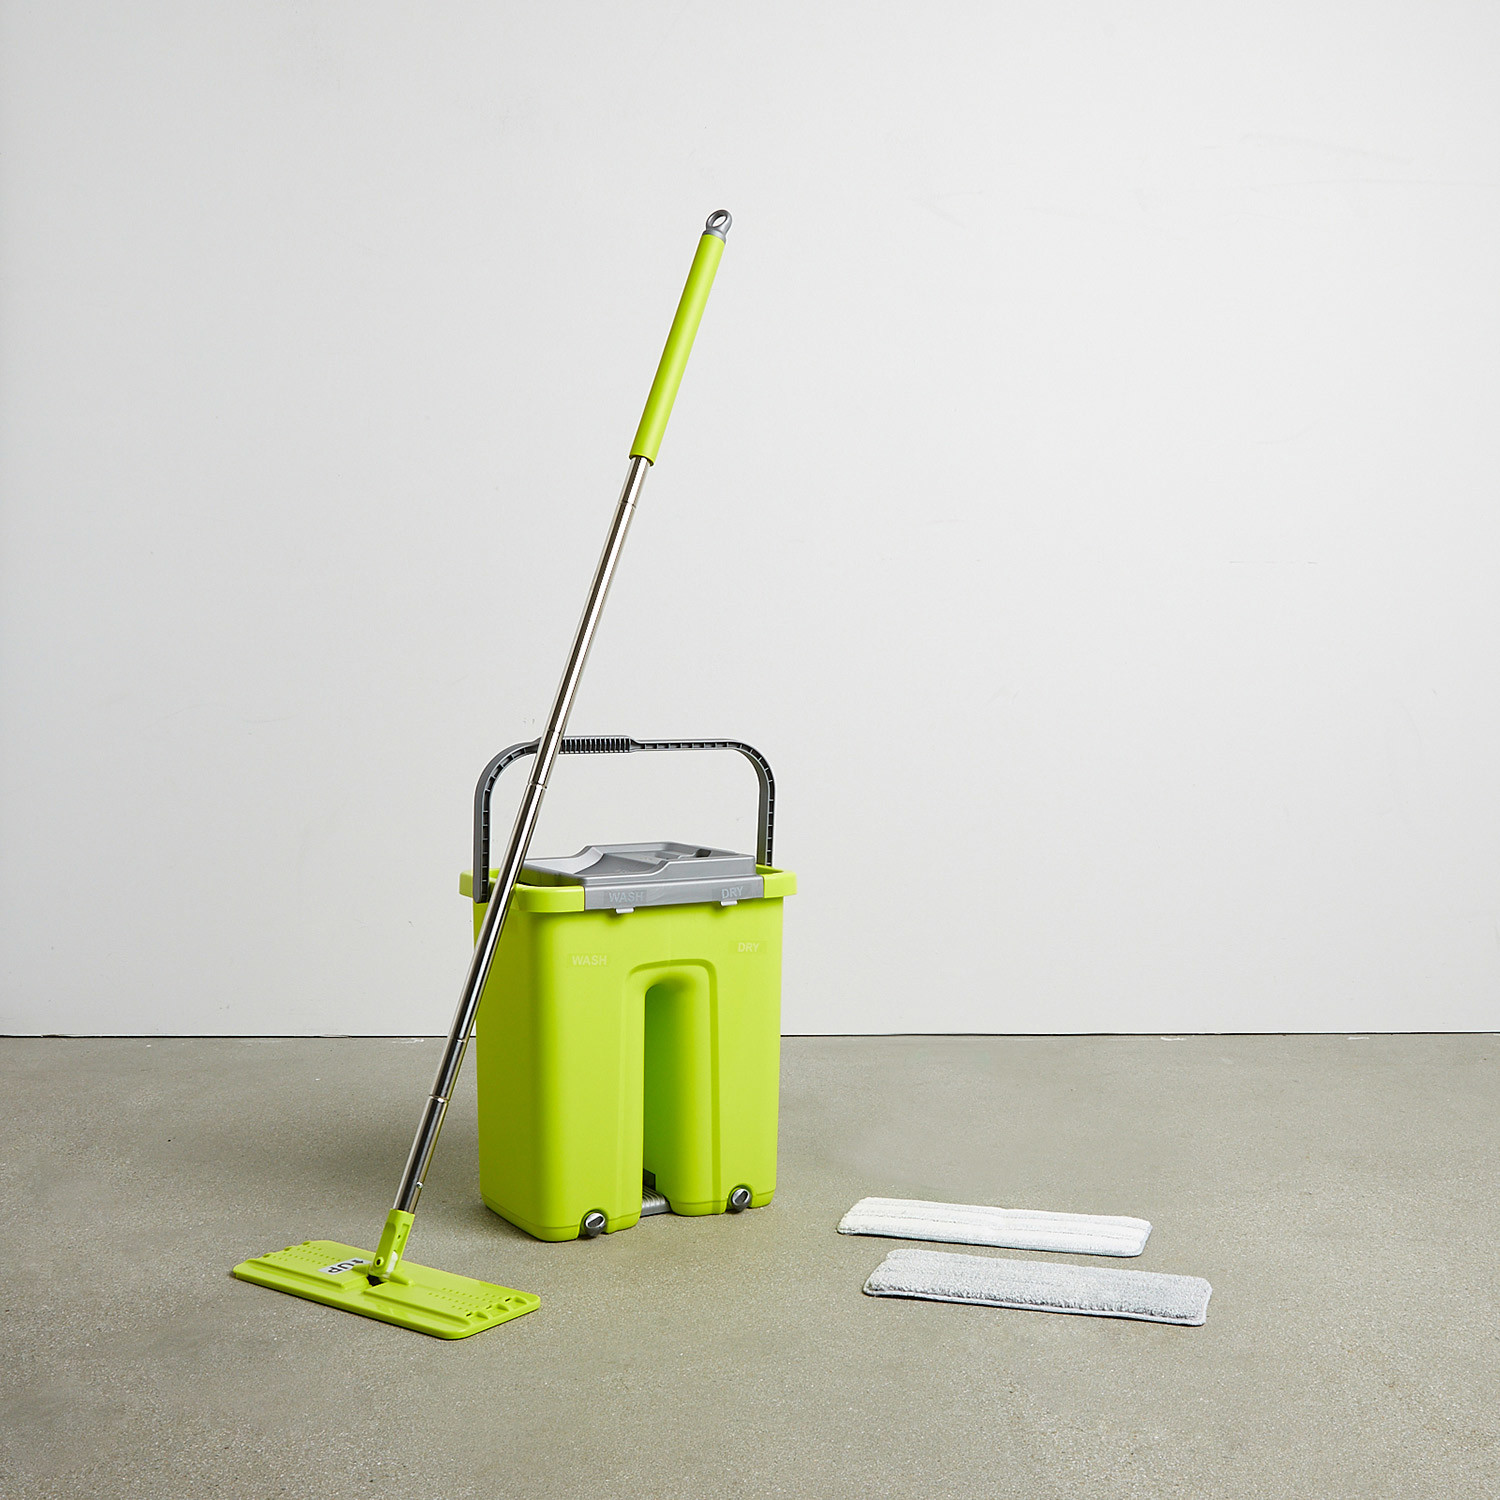 Squeezy Clean Self Cleaning Flat Mop System Mopnado